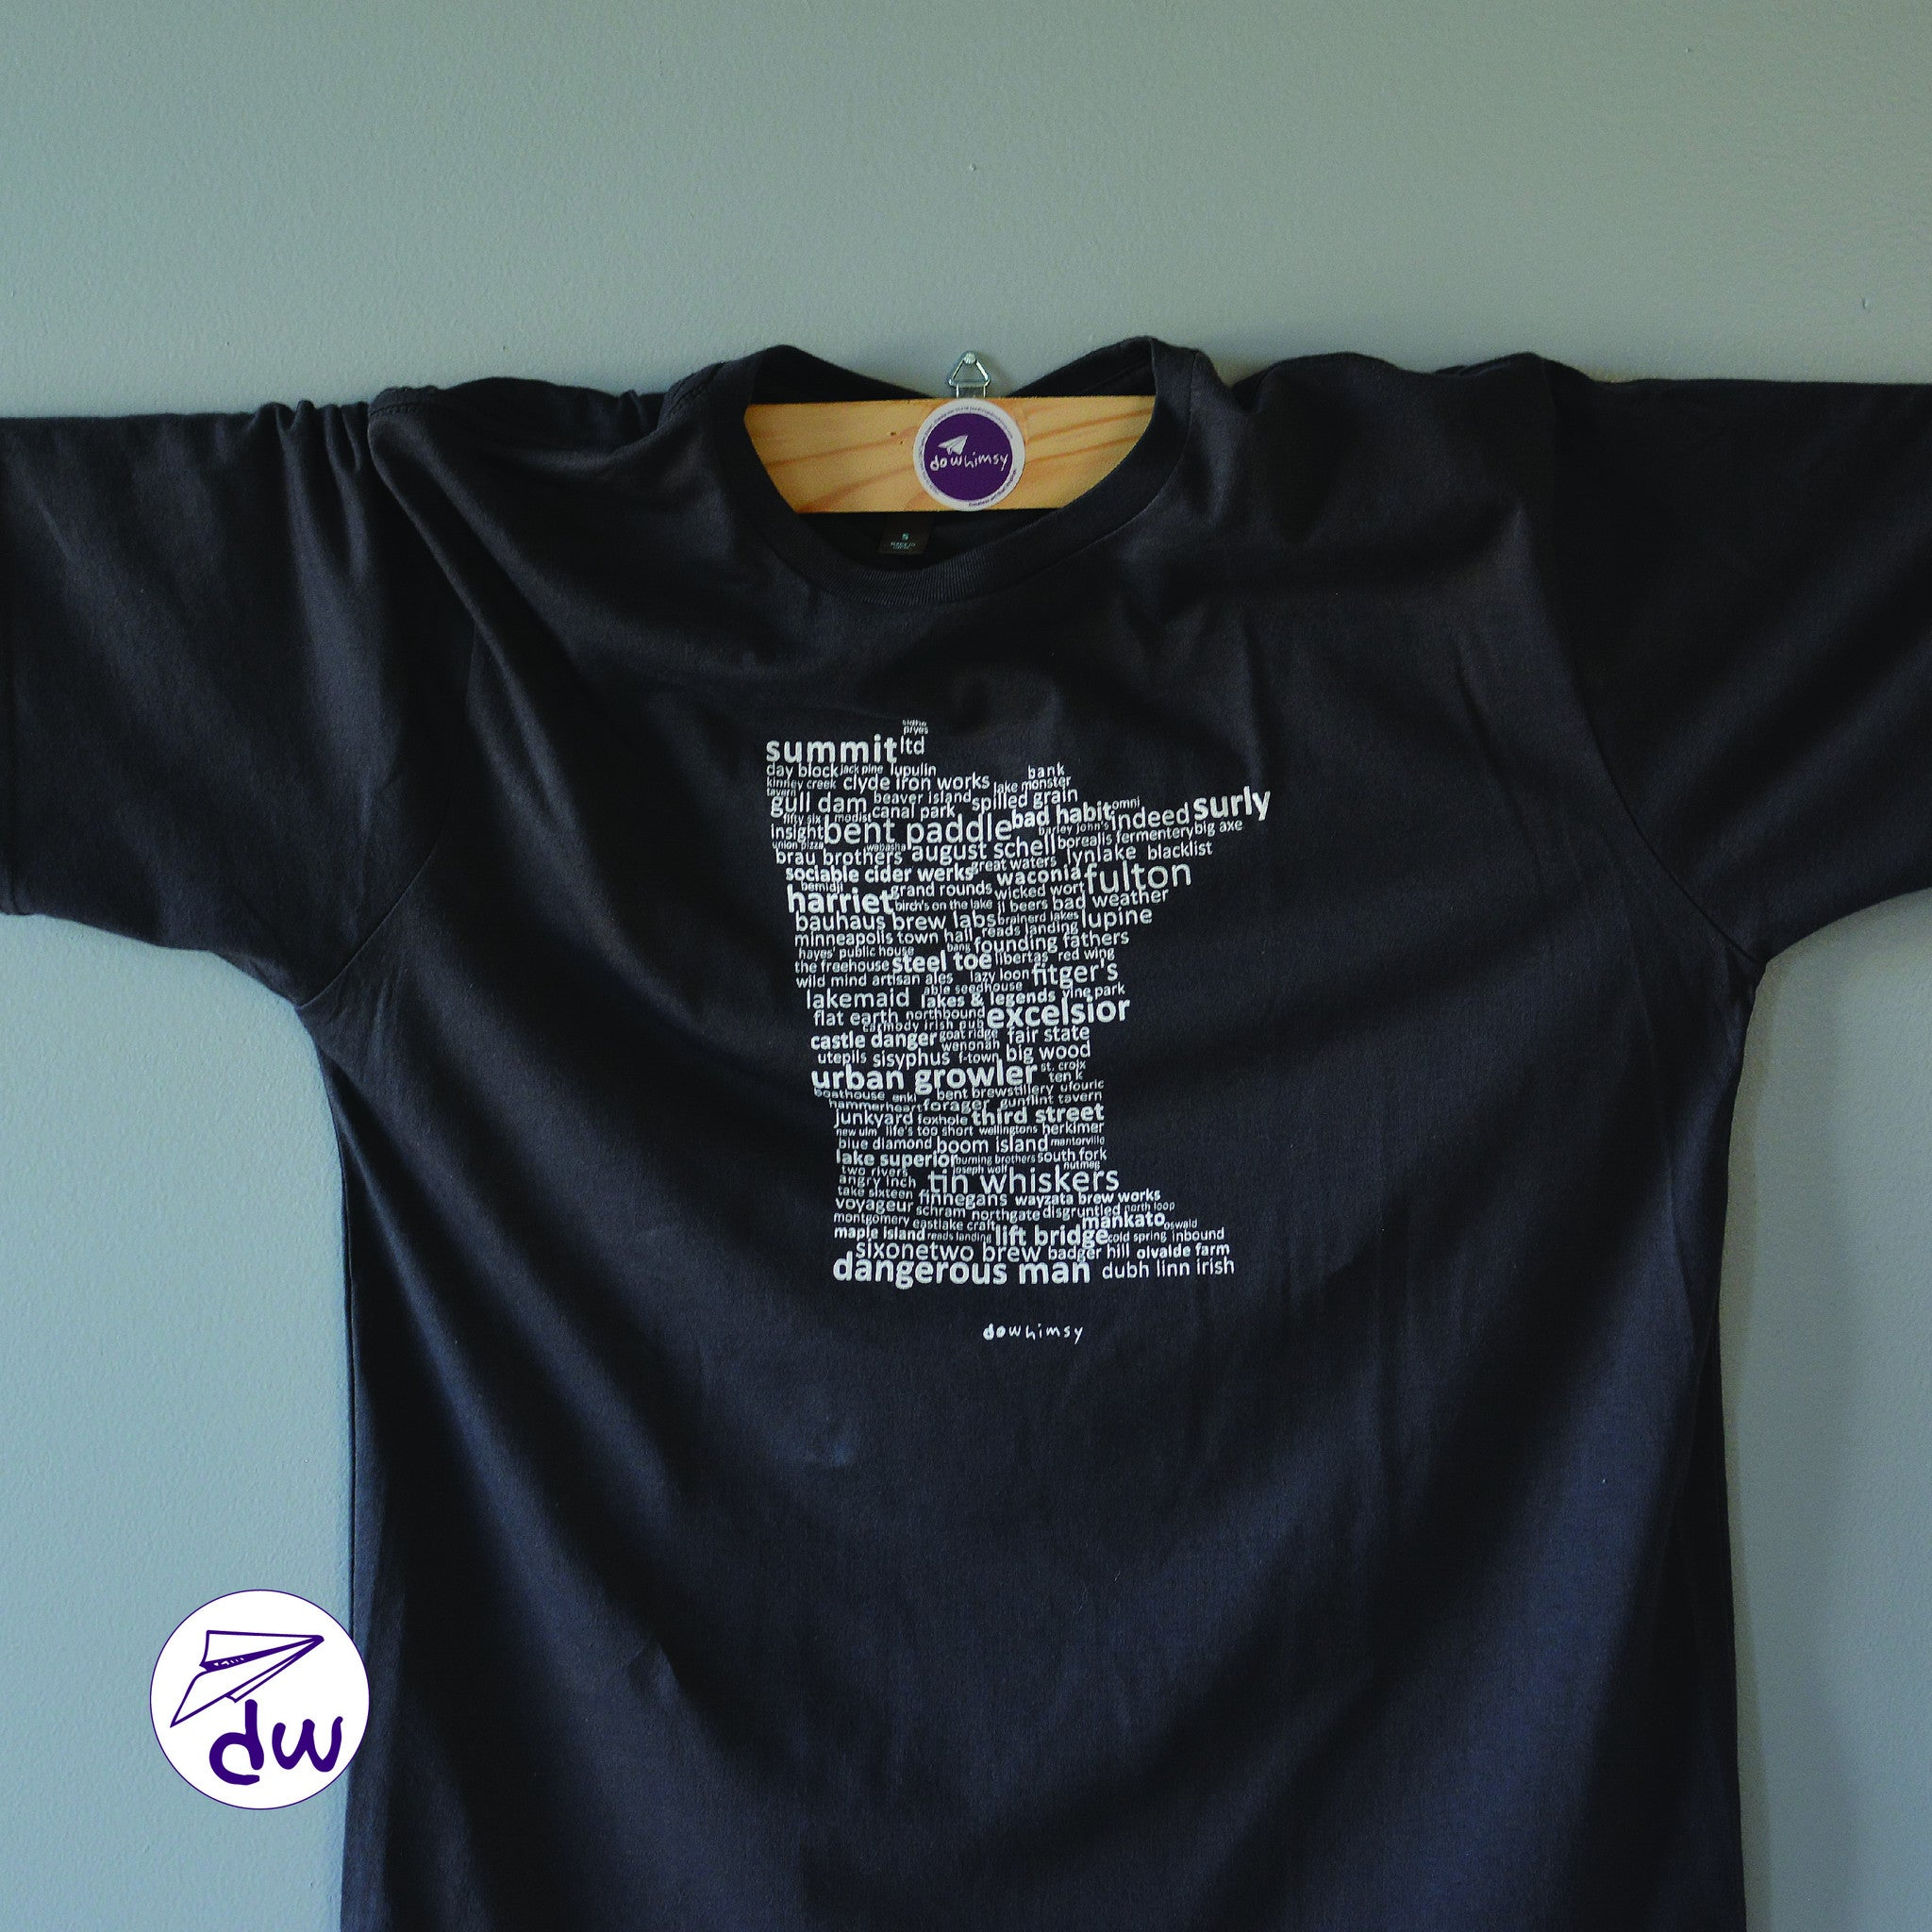 Brewed In Mn Unisex Soft Touch Shirt Do Whimsy Timeless Art